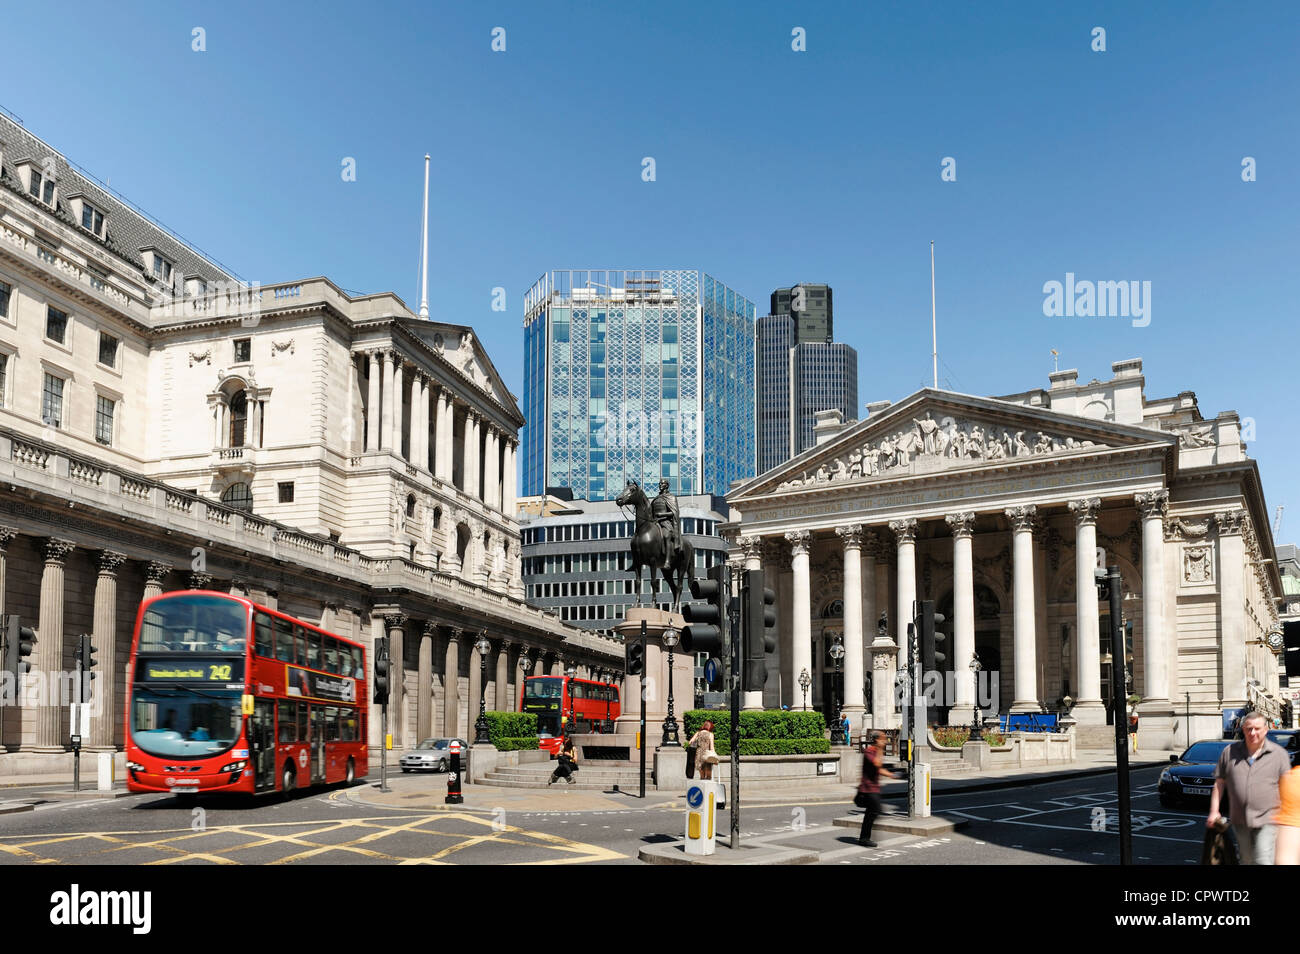 The Bank of England in The CIty of London - Stock Image